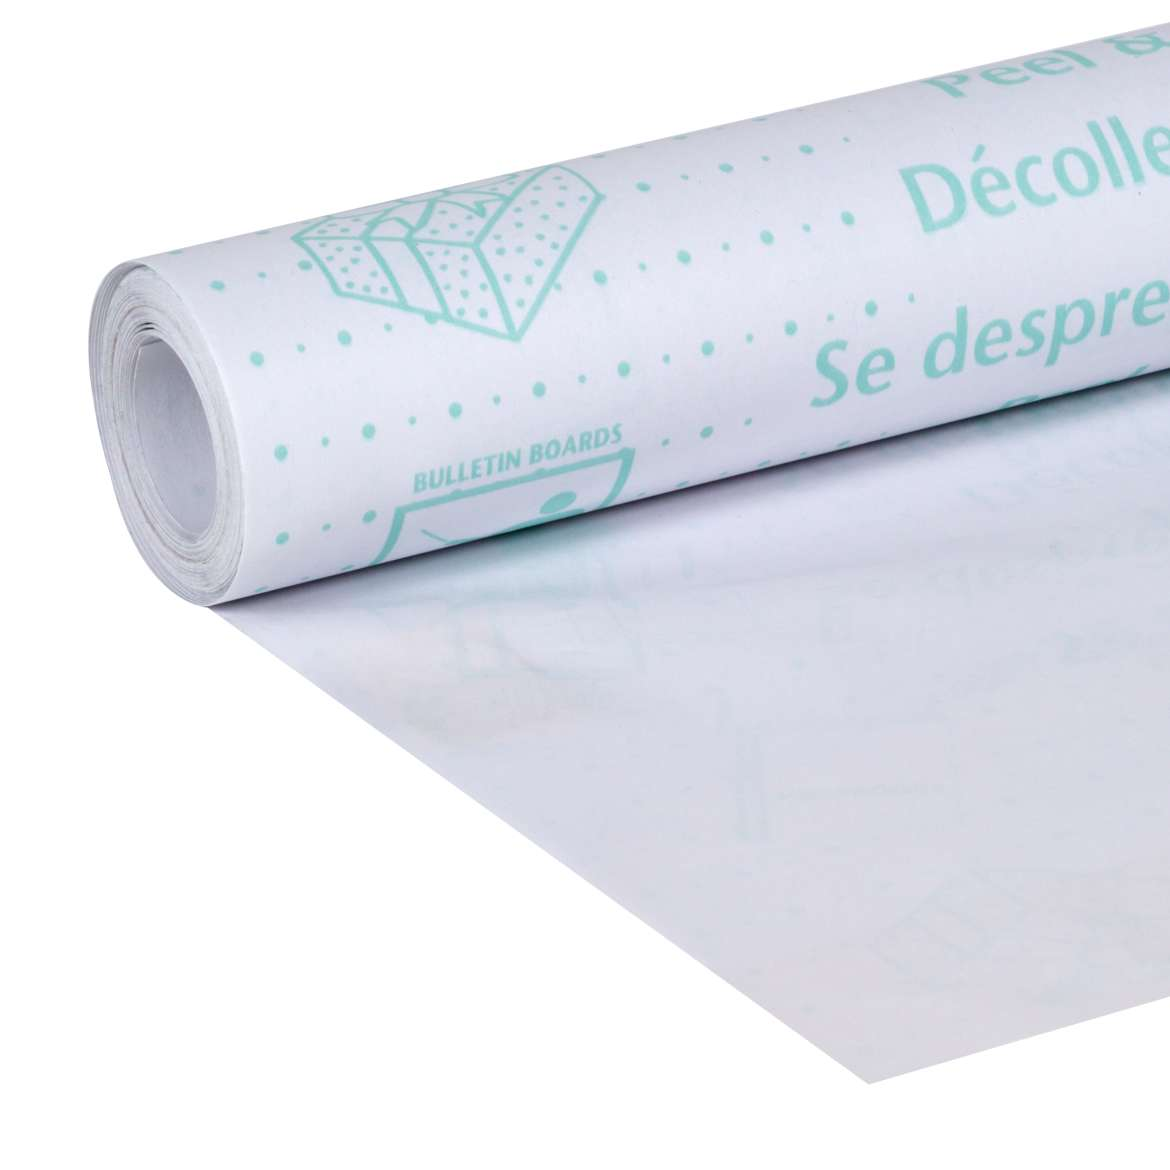 "Duck Brand Peel And Stick Permanent Adhesive Clear Laminate Roll 20/"" x 20/' ft."